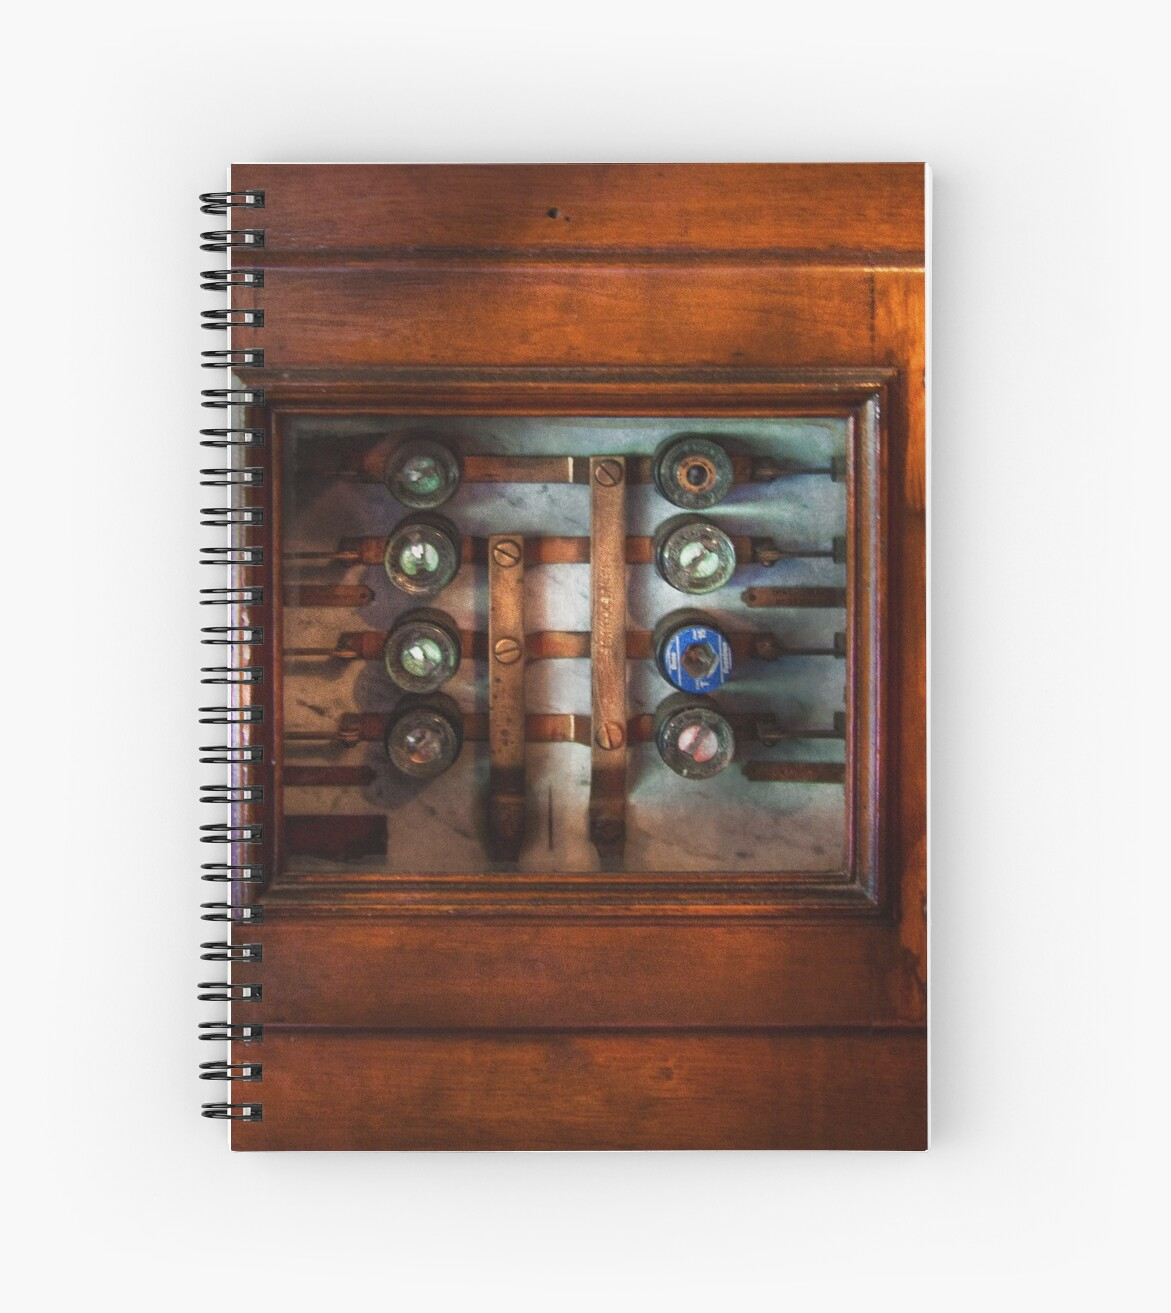 Steampunk - Electrical - The fuse panel by Michael Savad